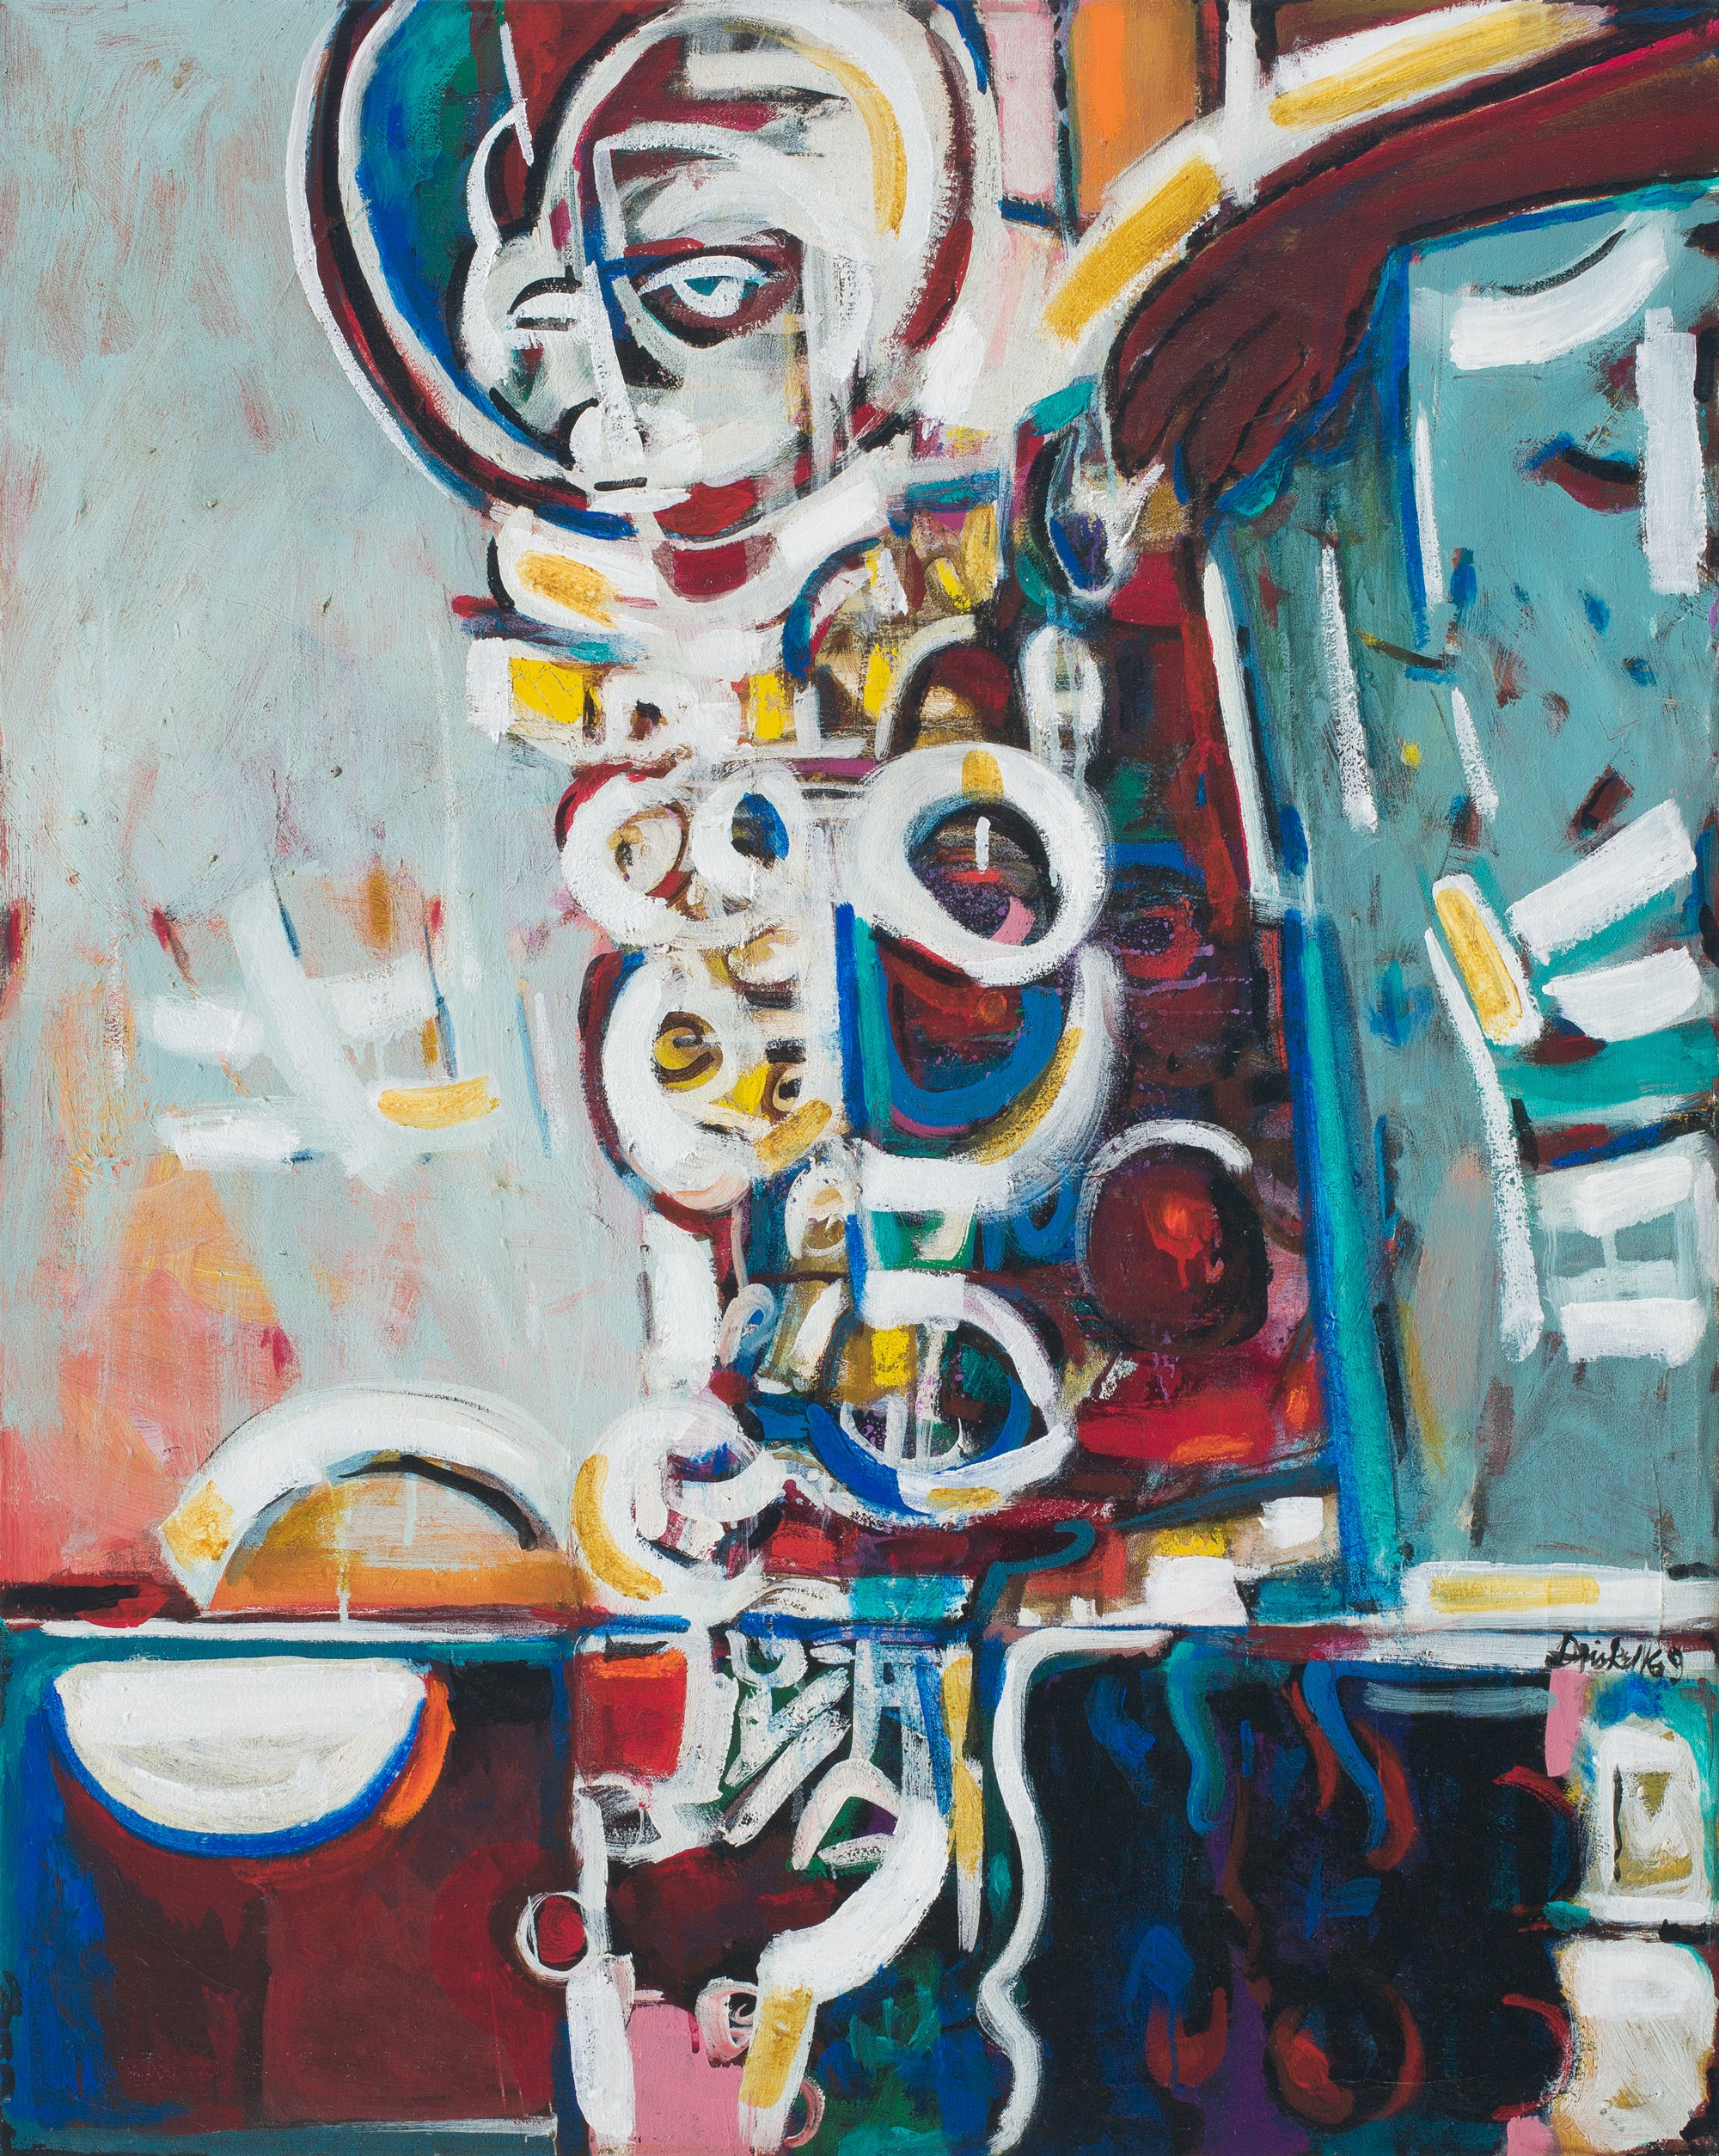 David Driskell, <em>Yoruba Forms #5</em>, 1969. Oil on canvas, 41 1/4 x 34 inches. Courtesy DC Moore, New York.